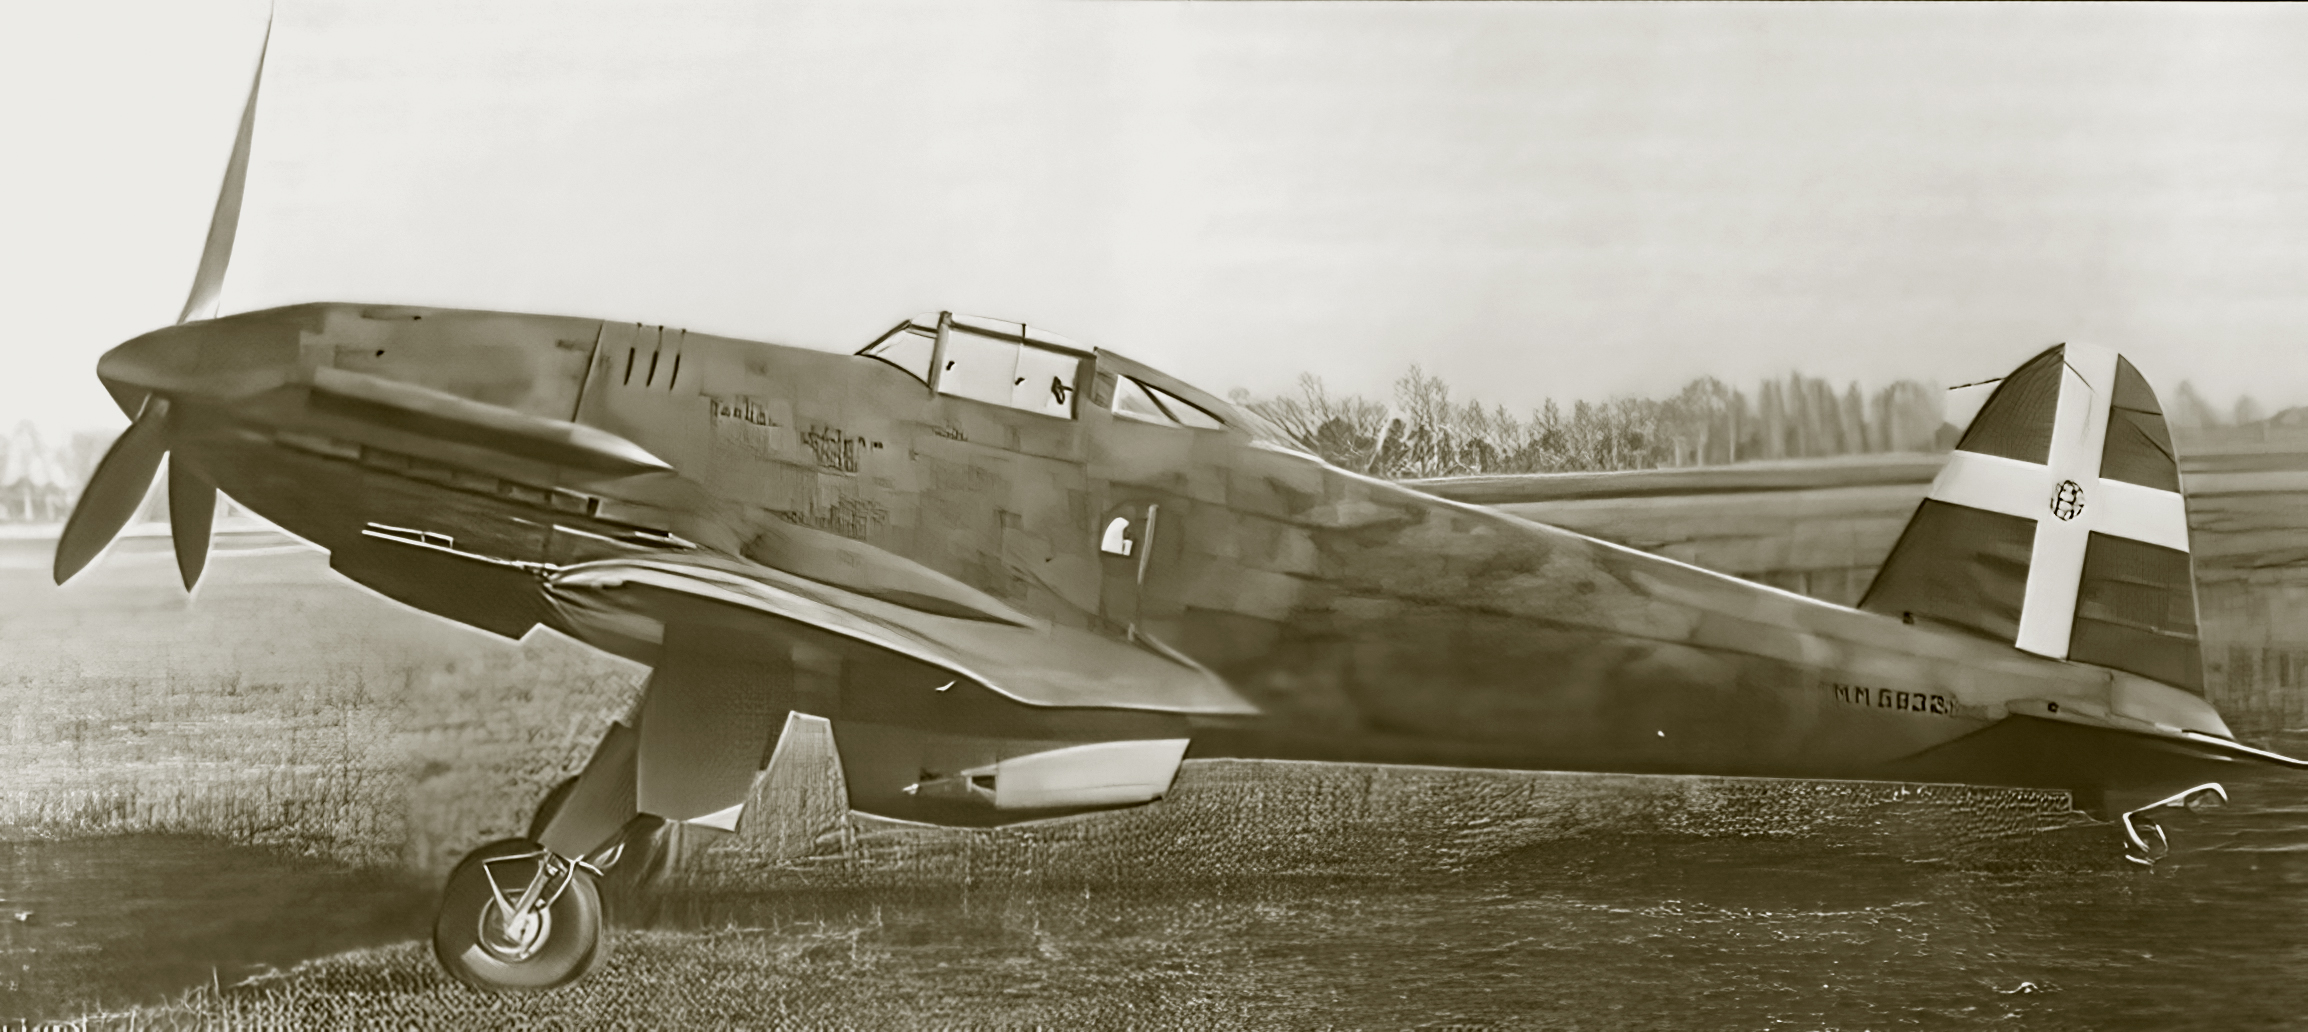 Caproni Vizzola F 4 was an Italian fighter aircraft prototype built by Caproni 167G303SA MM5932 02